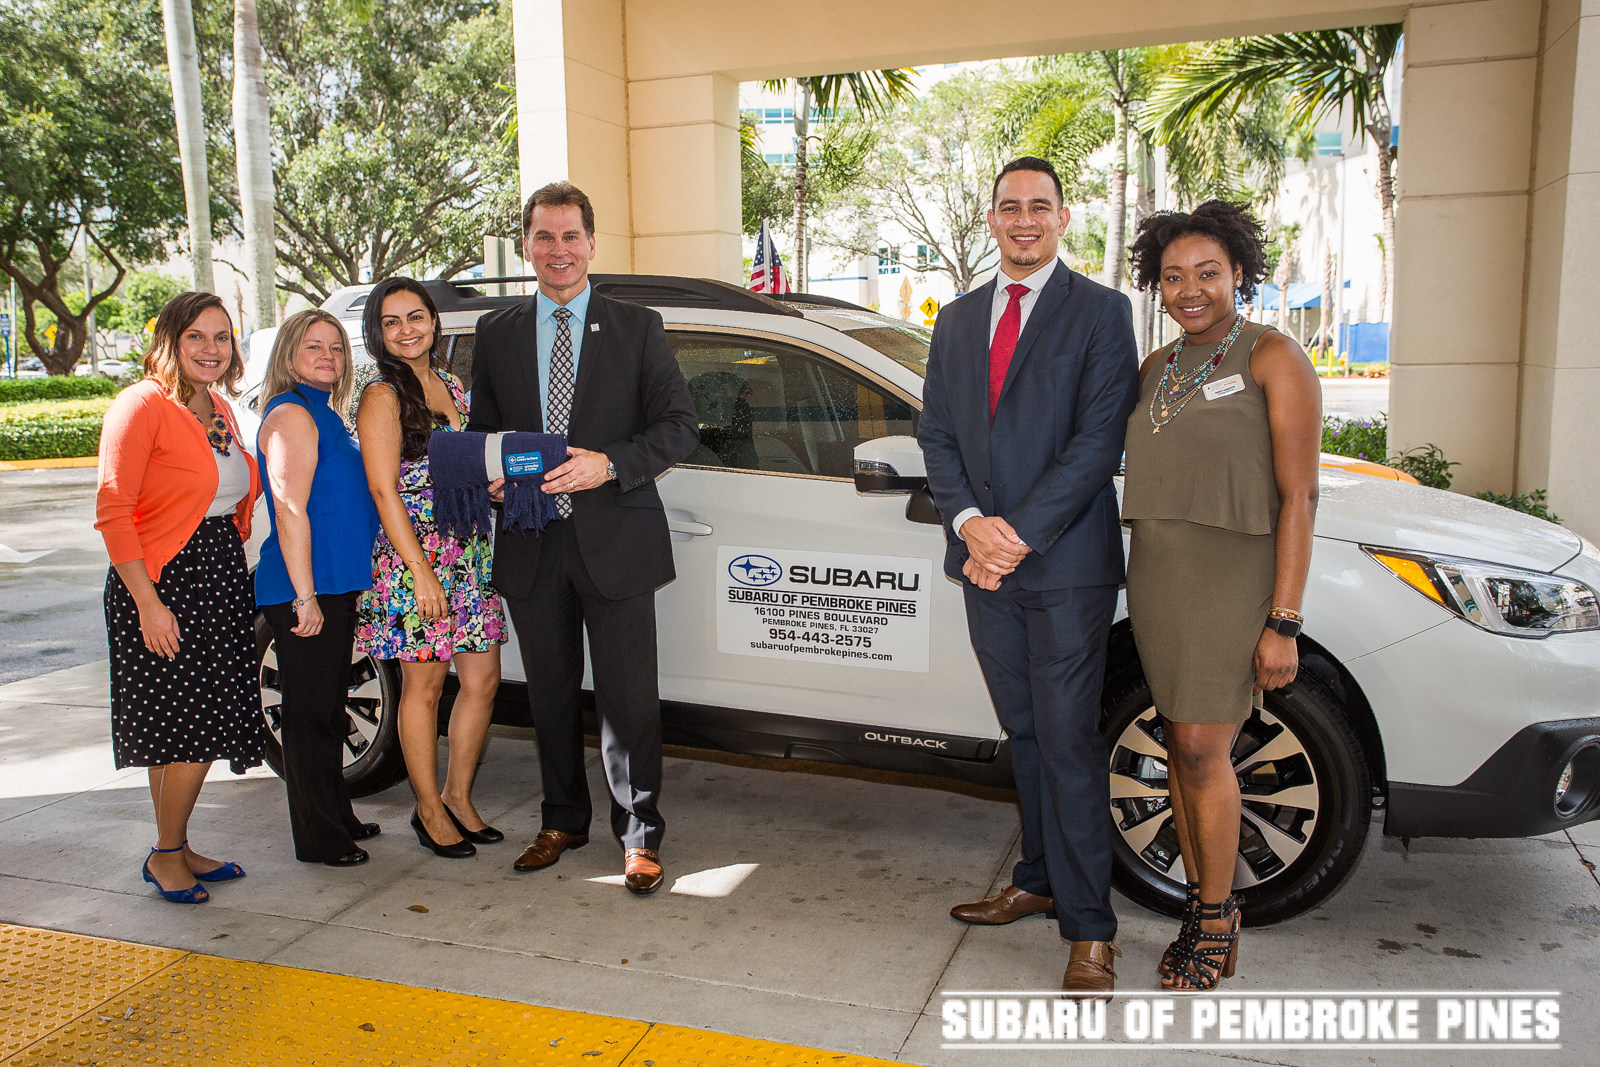 Subaru Of Pembroke Pines >> Subaru Of Pembroke Pines Spreads Warmth To Cancer Patients In Local